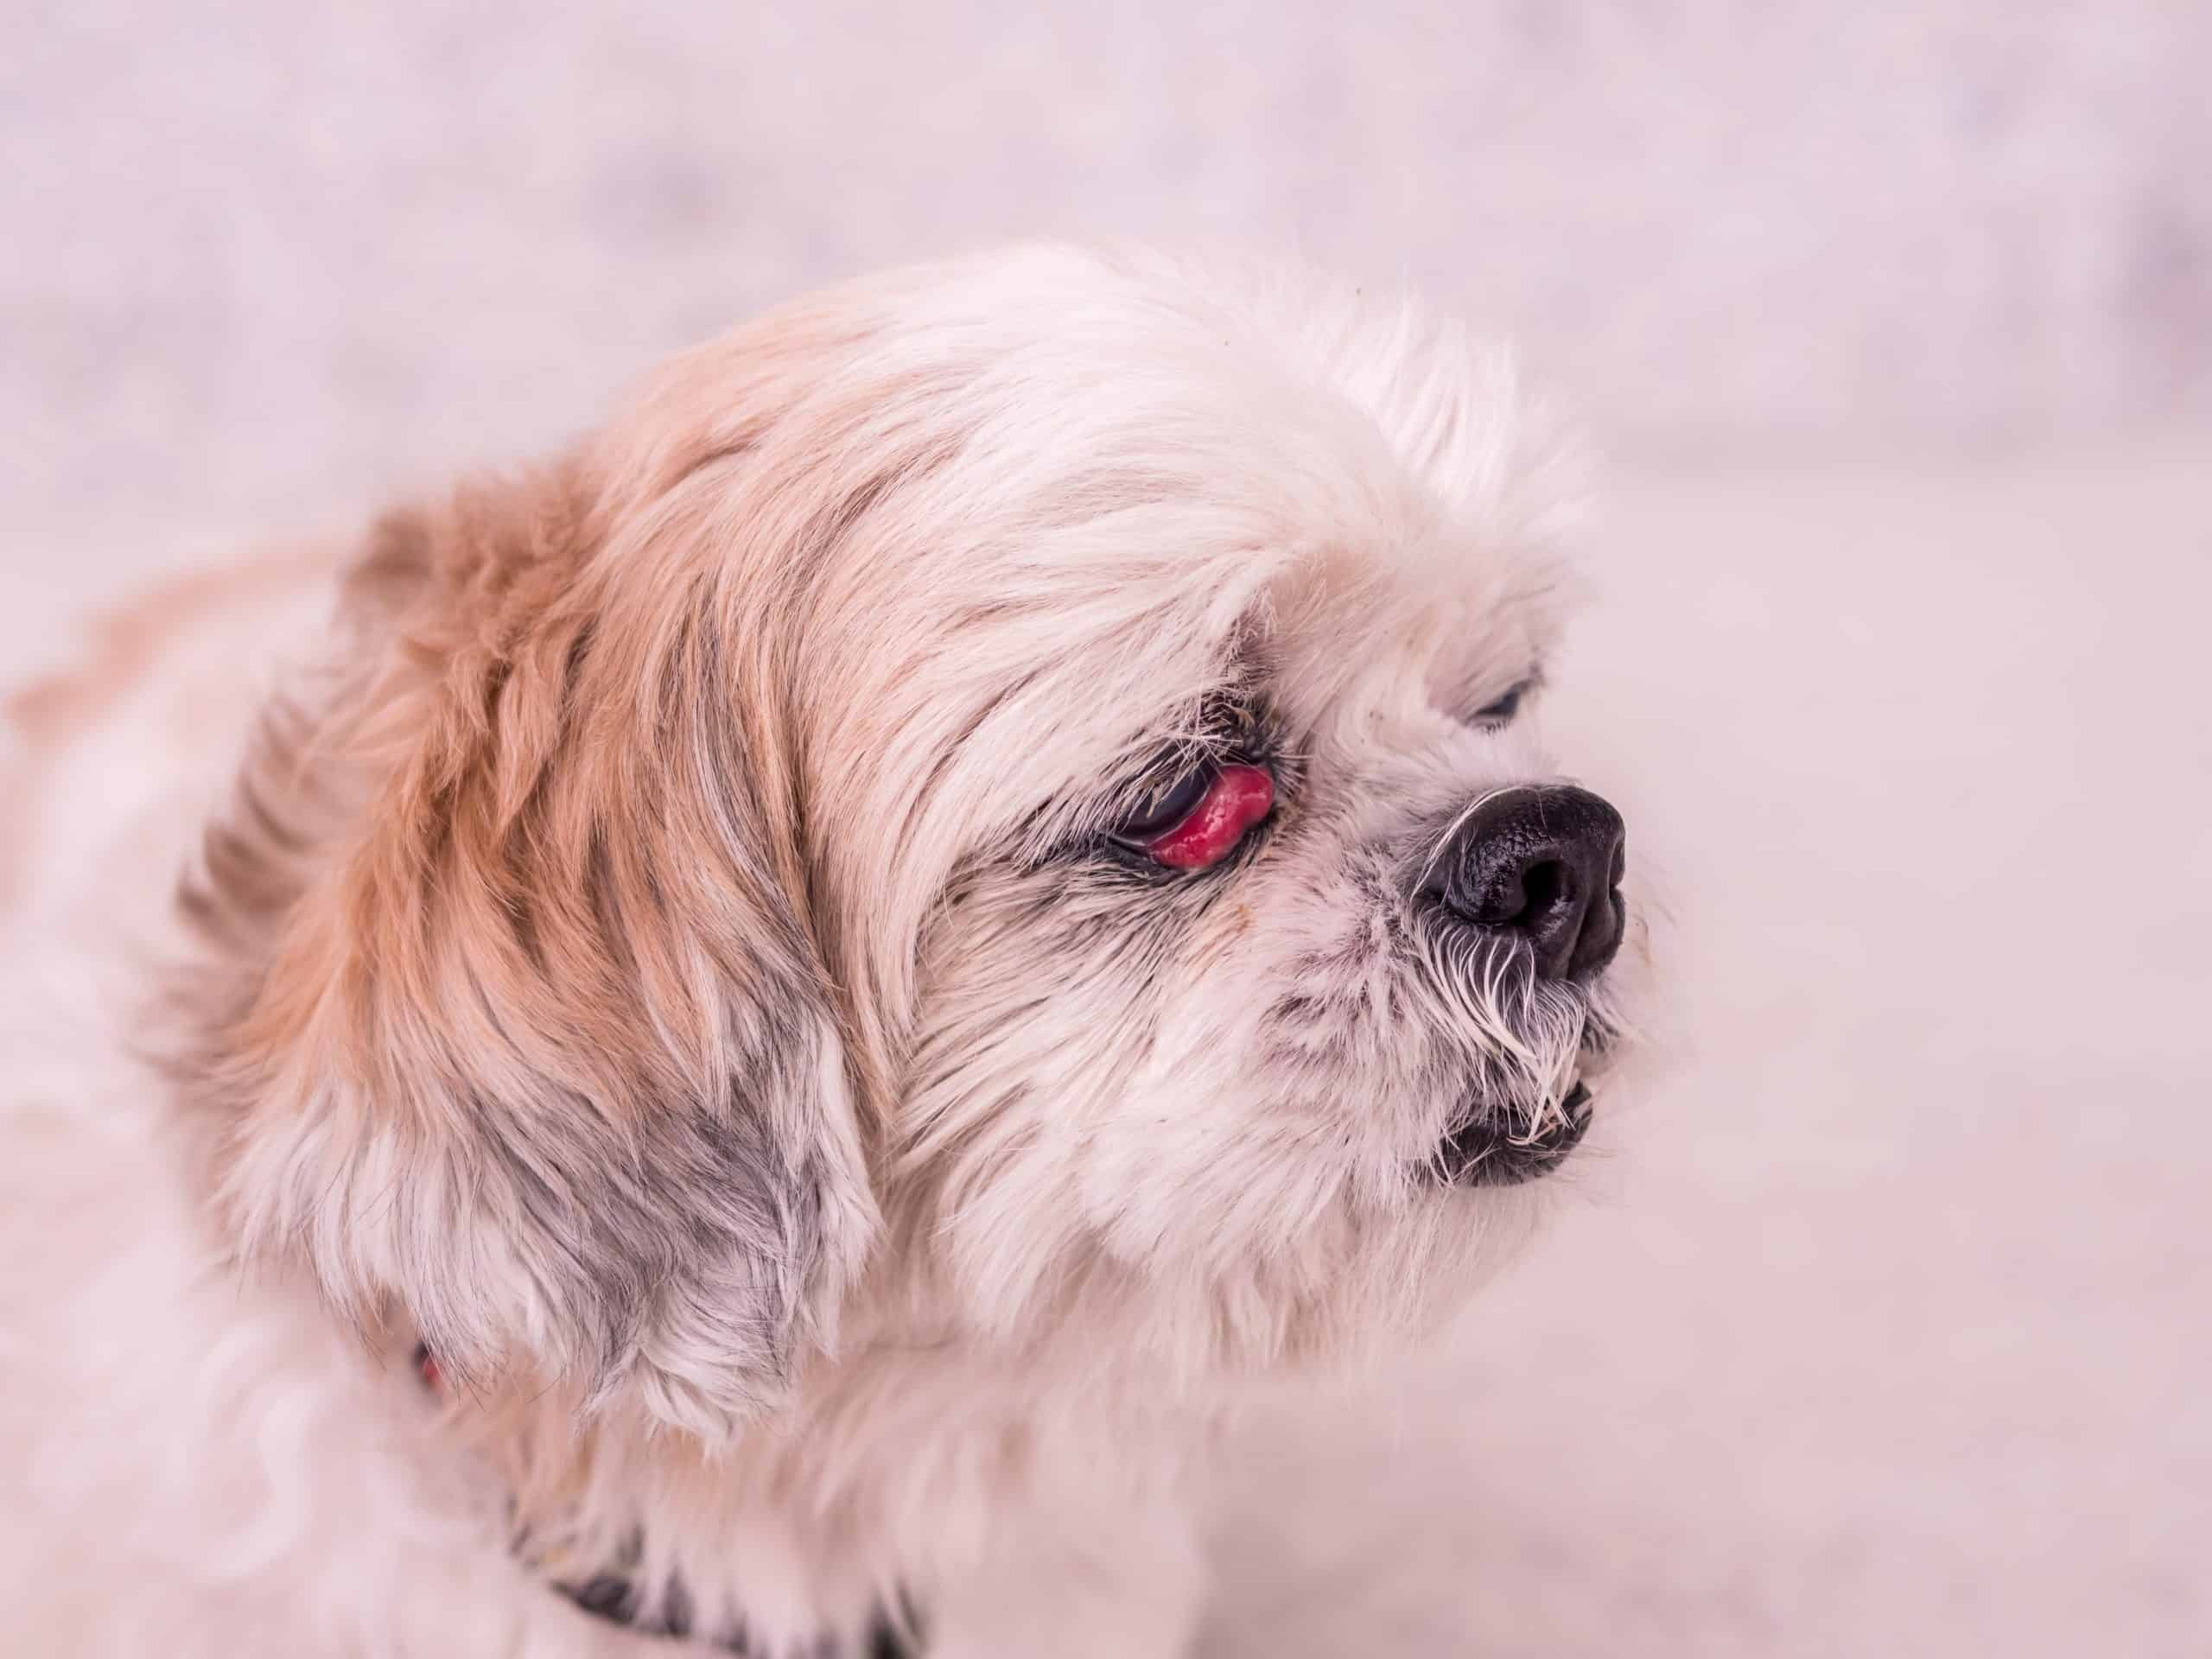 Cherry eye is common in cocker spaniels, beagles, and English bulldogs. The condition occurs when the third eyelid prolapses.